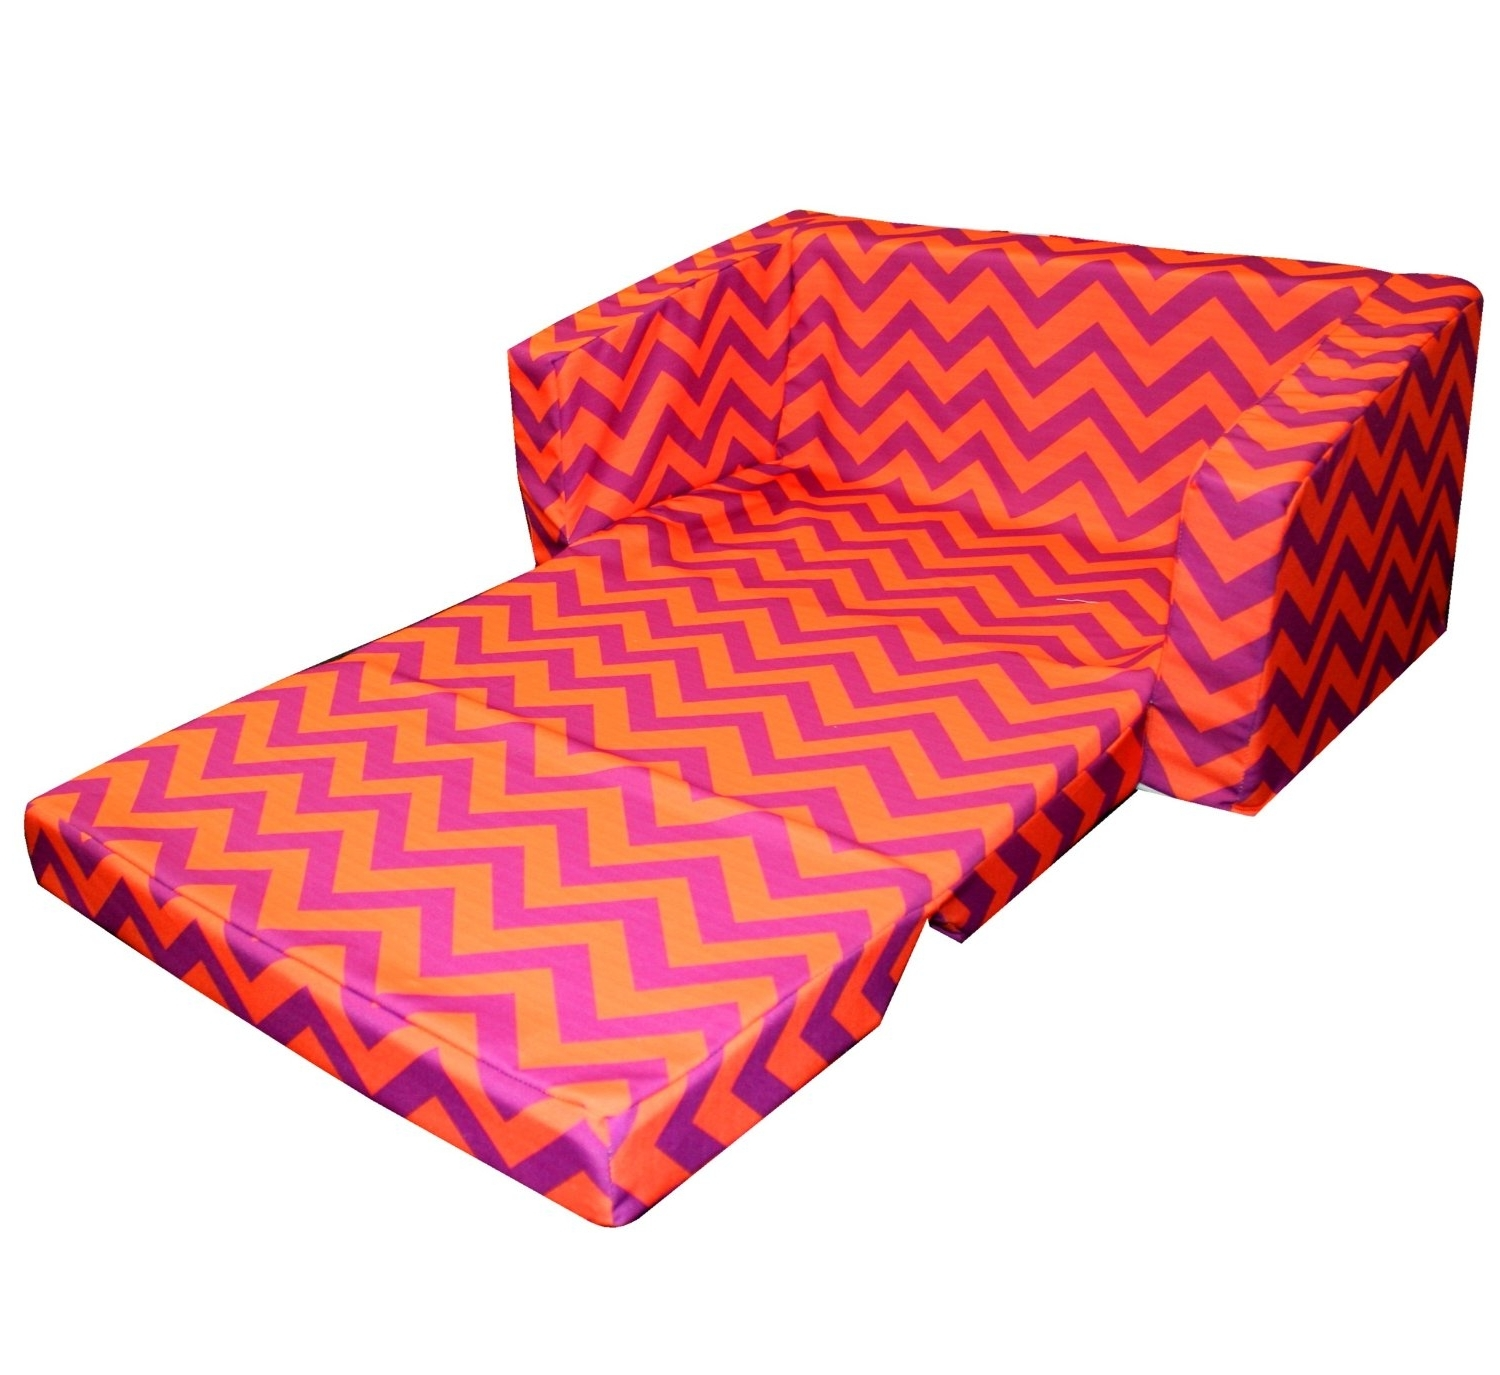 Kids' Fold Out Sleeper Sofas Pertaining To Current Flip Out Sofas (Gallery 11 of 20)